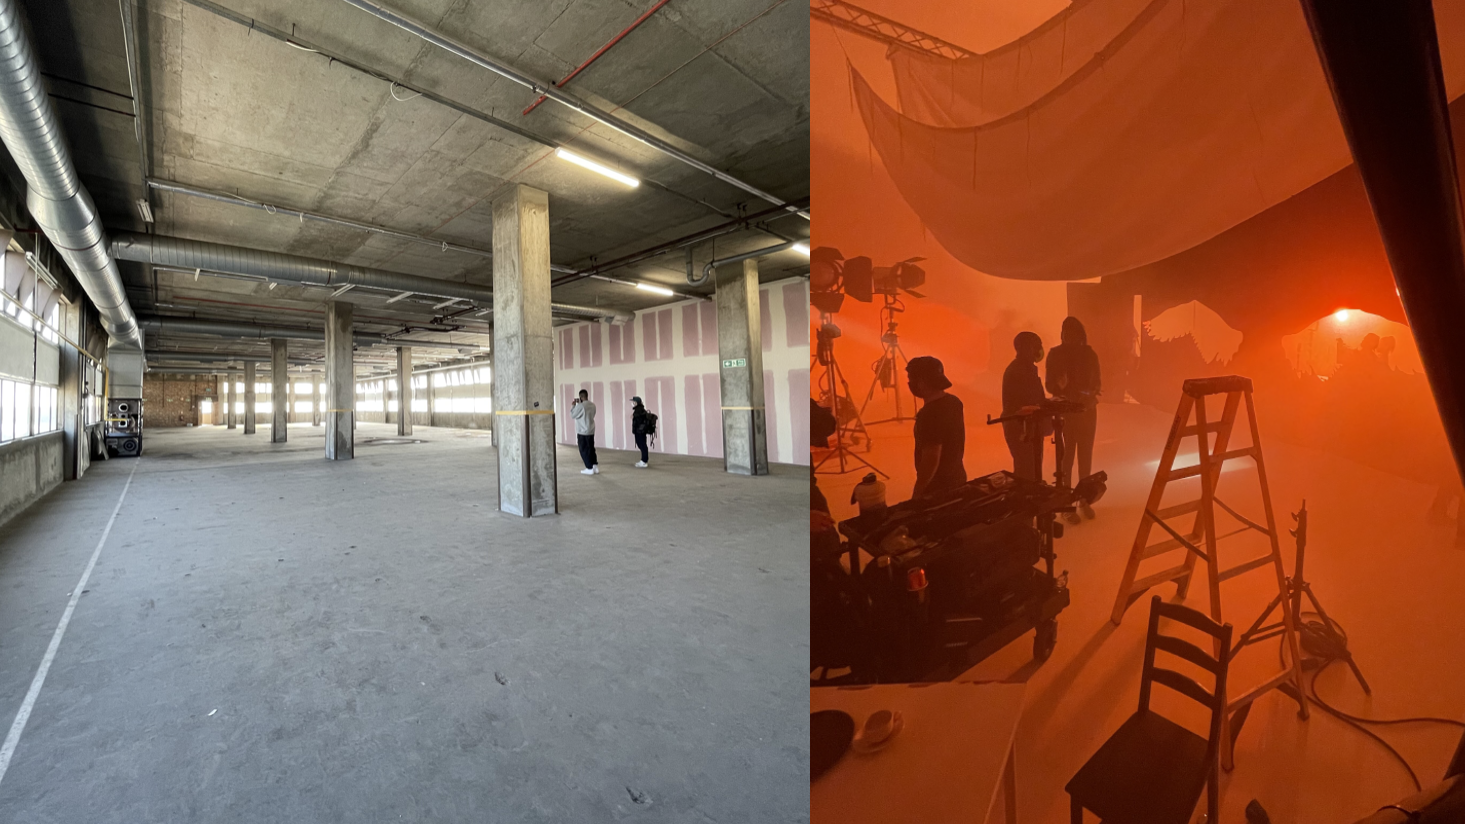 2 images showing behind the scene on set of a music video